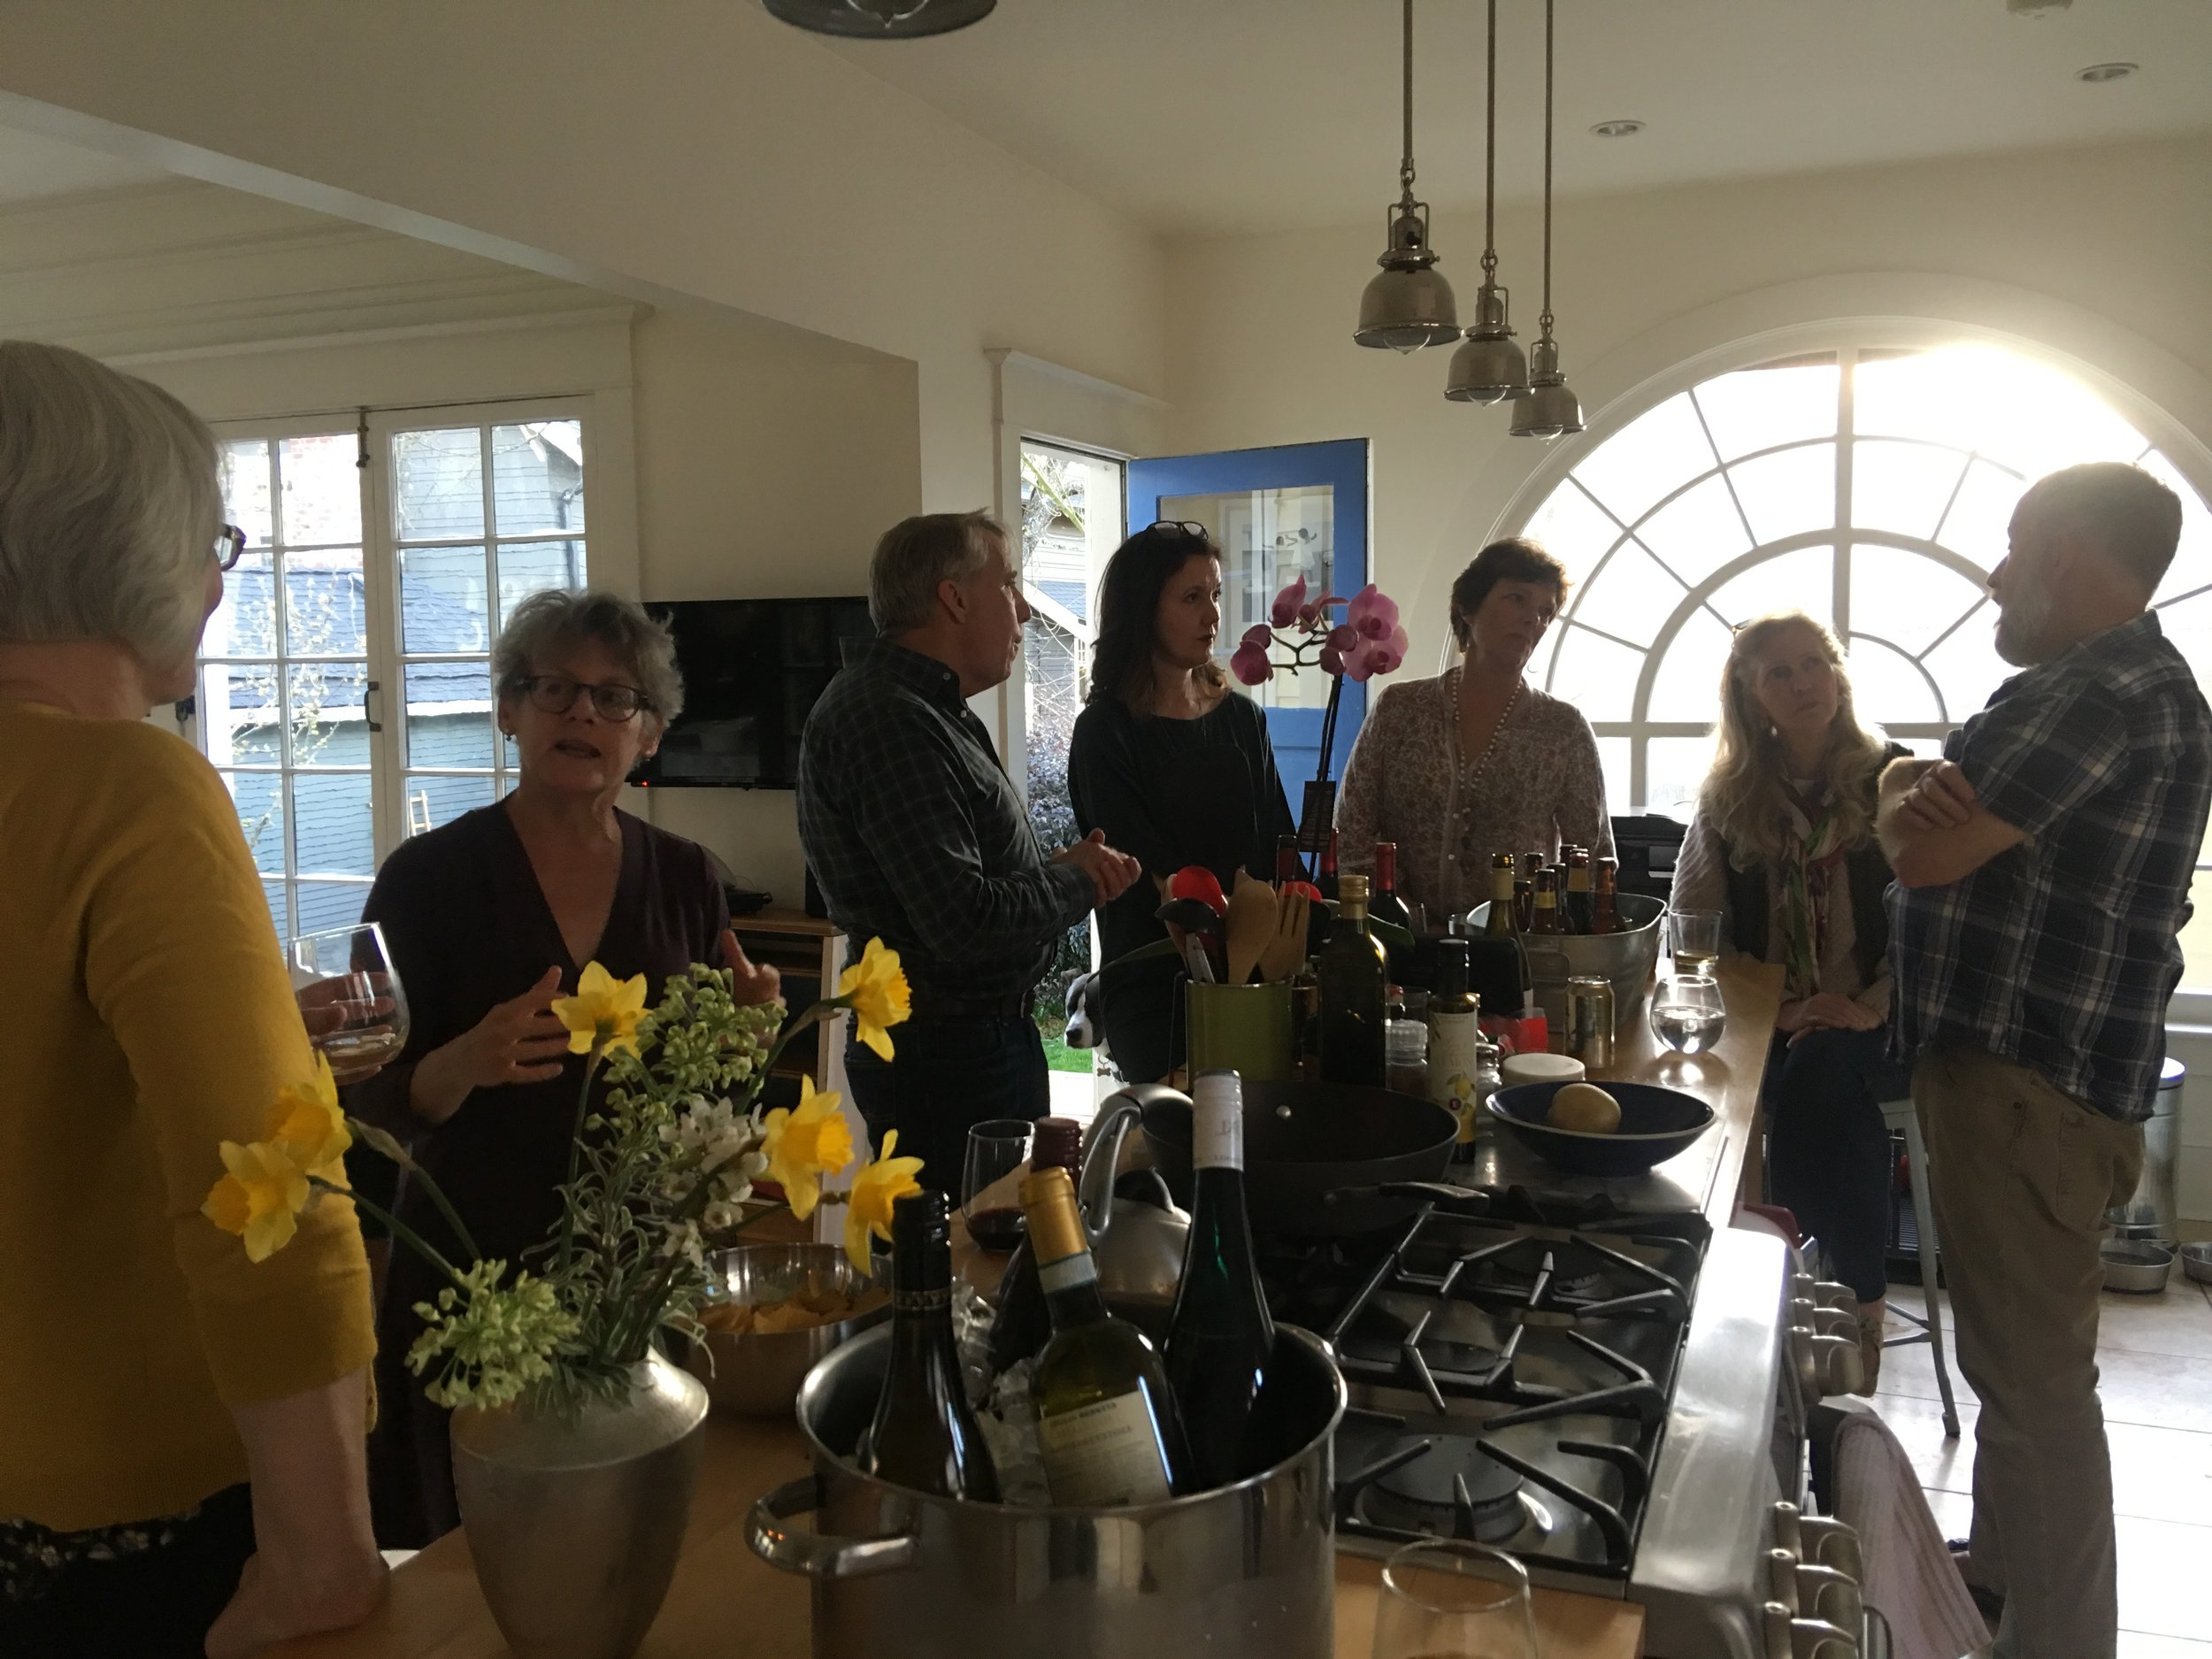 Post-conference party at Mike Marshall's gorgeous home with some of our favorite writers